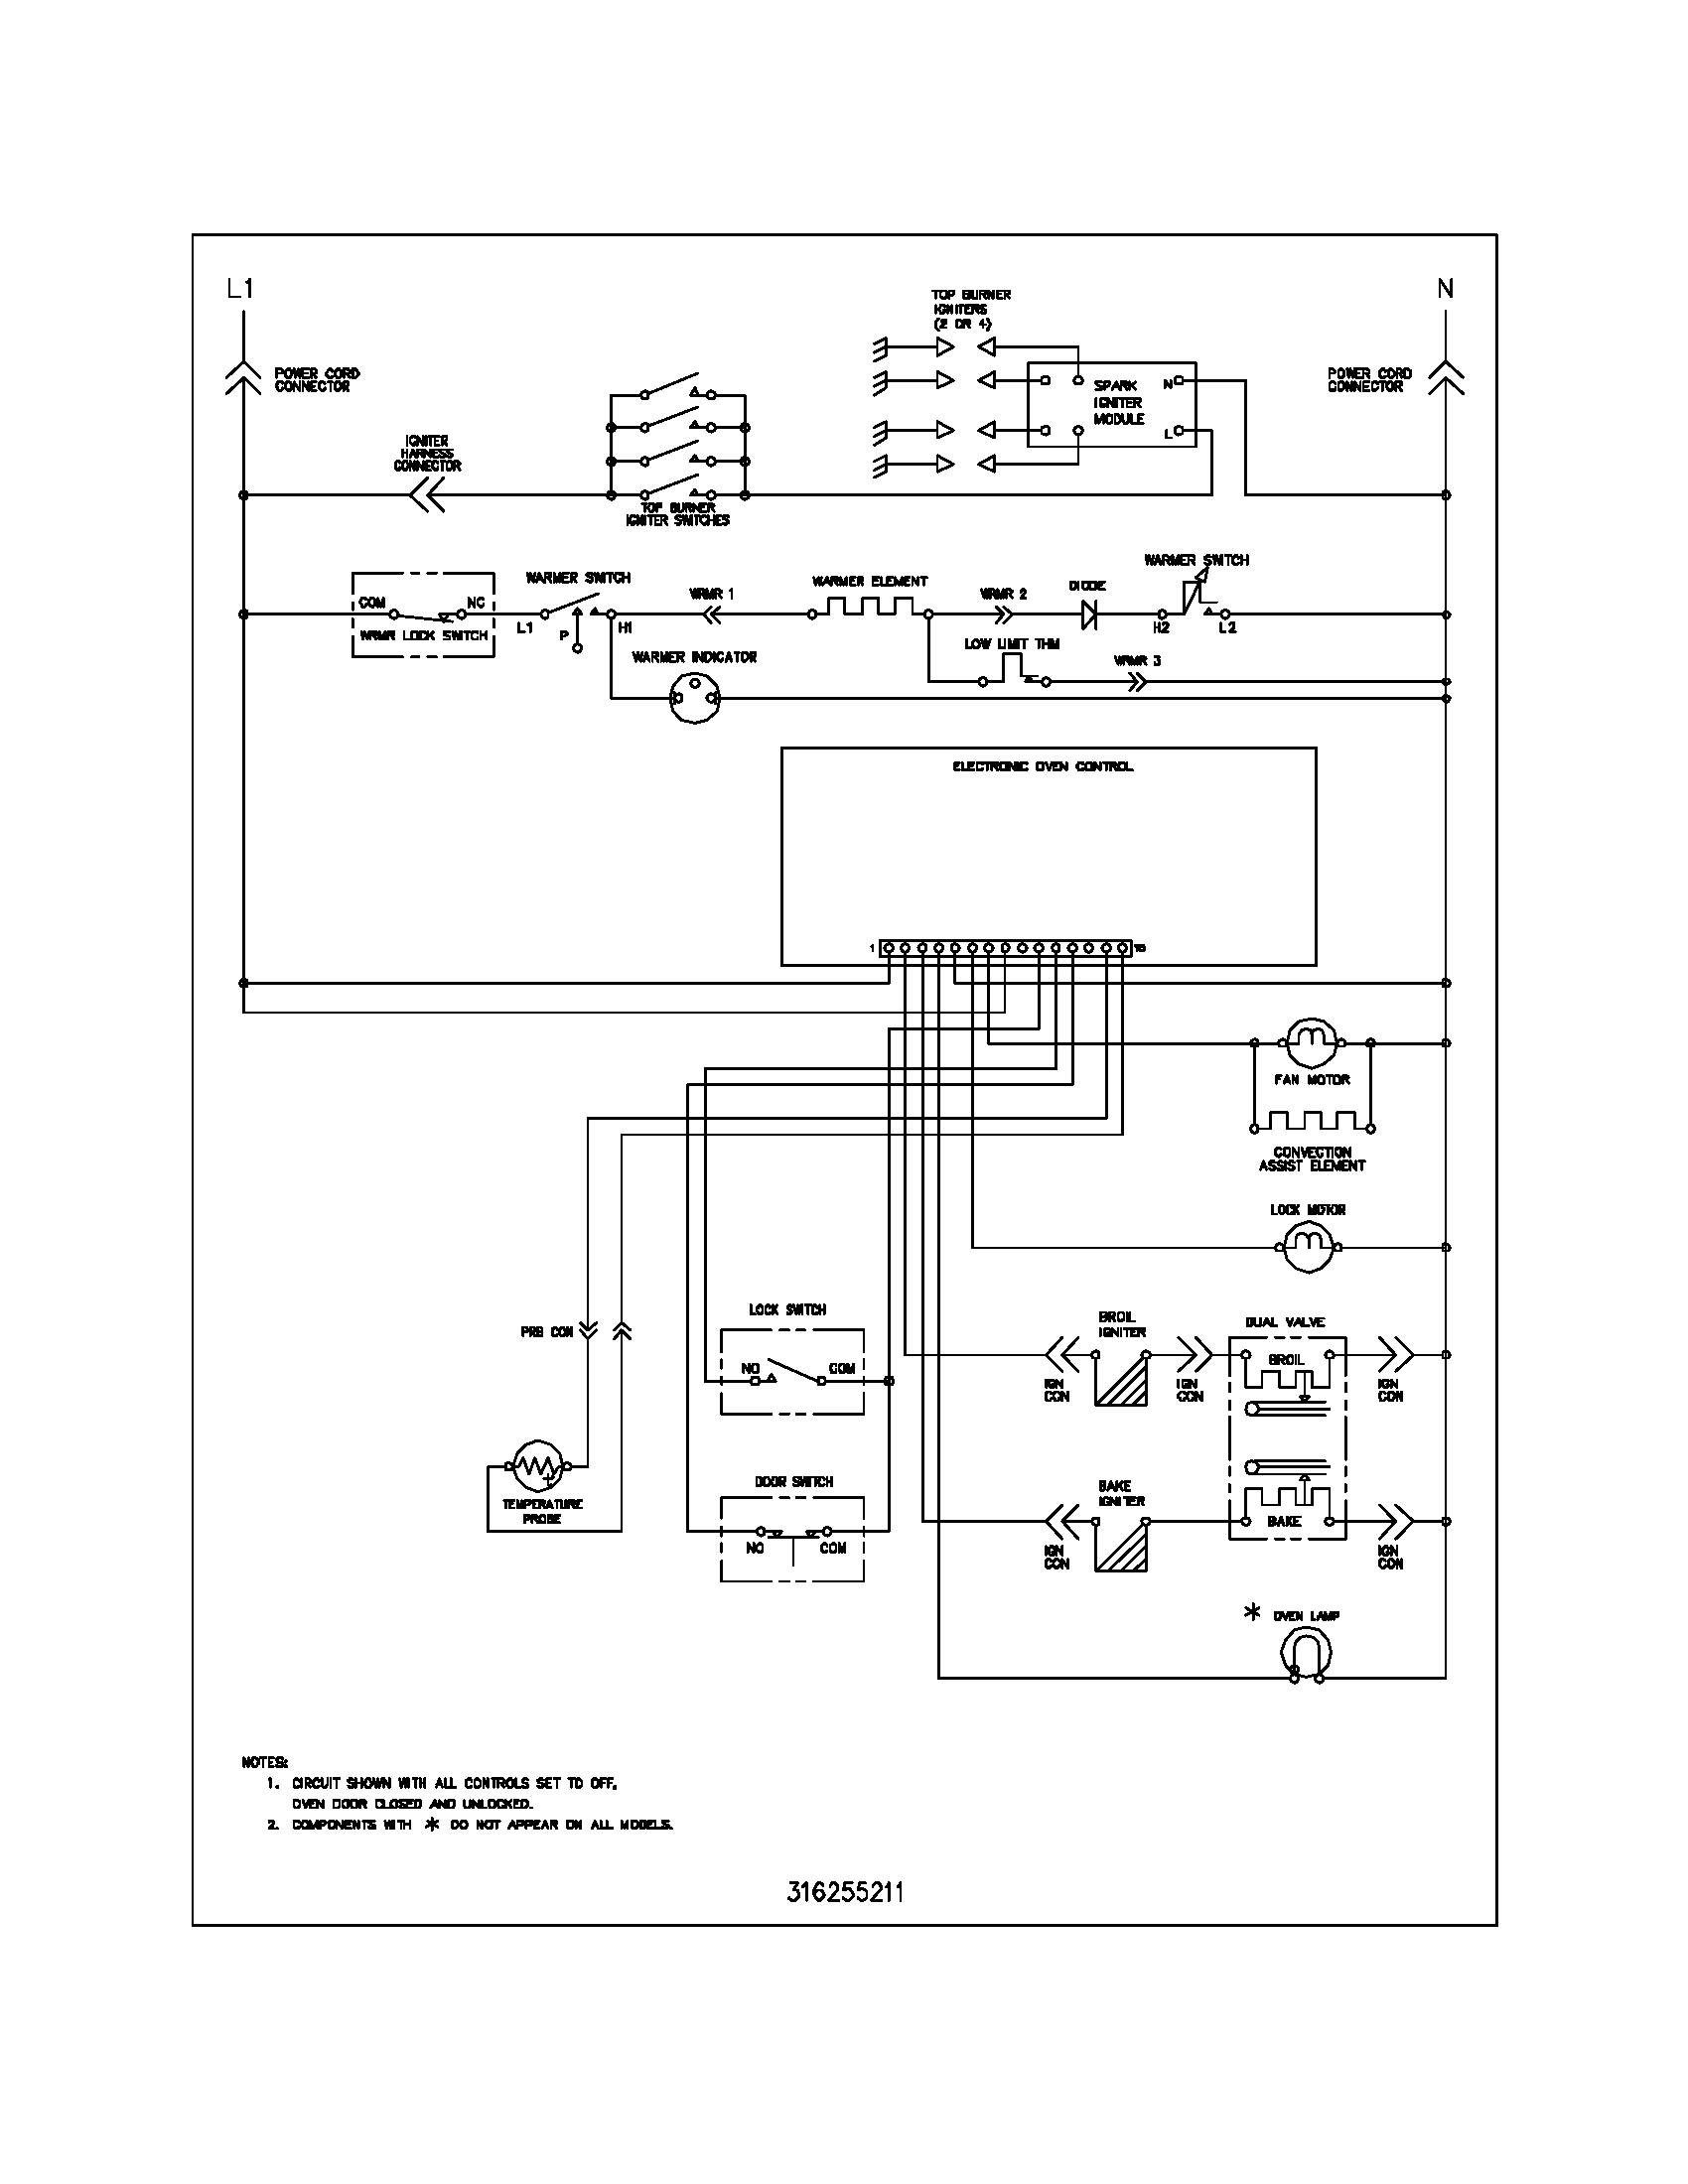 Lovely Wiring Diagram Gas Furnace Diagrams Digramssample Diagramimages Wiringdiagramsample Wi Thermostat Wiring Electric Fireplace Heater Electric Furnace